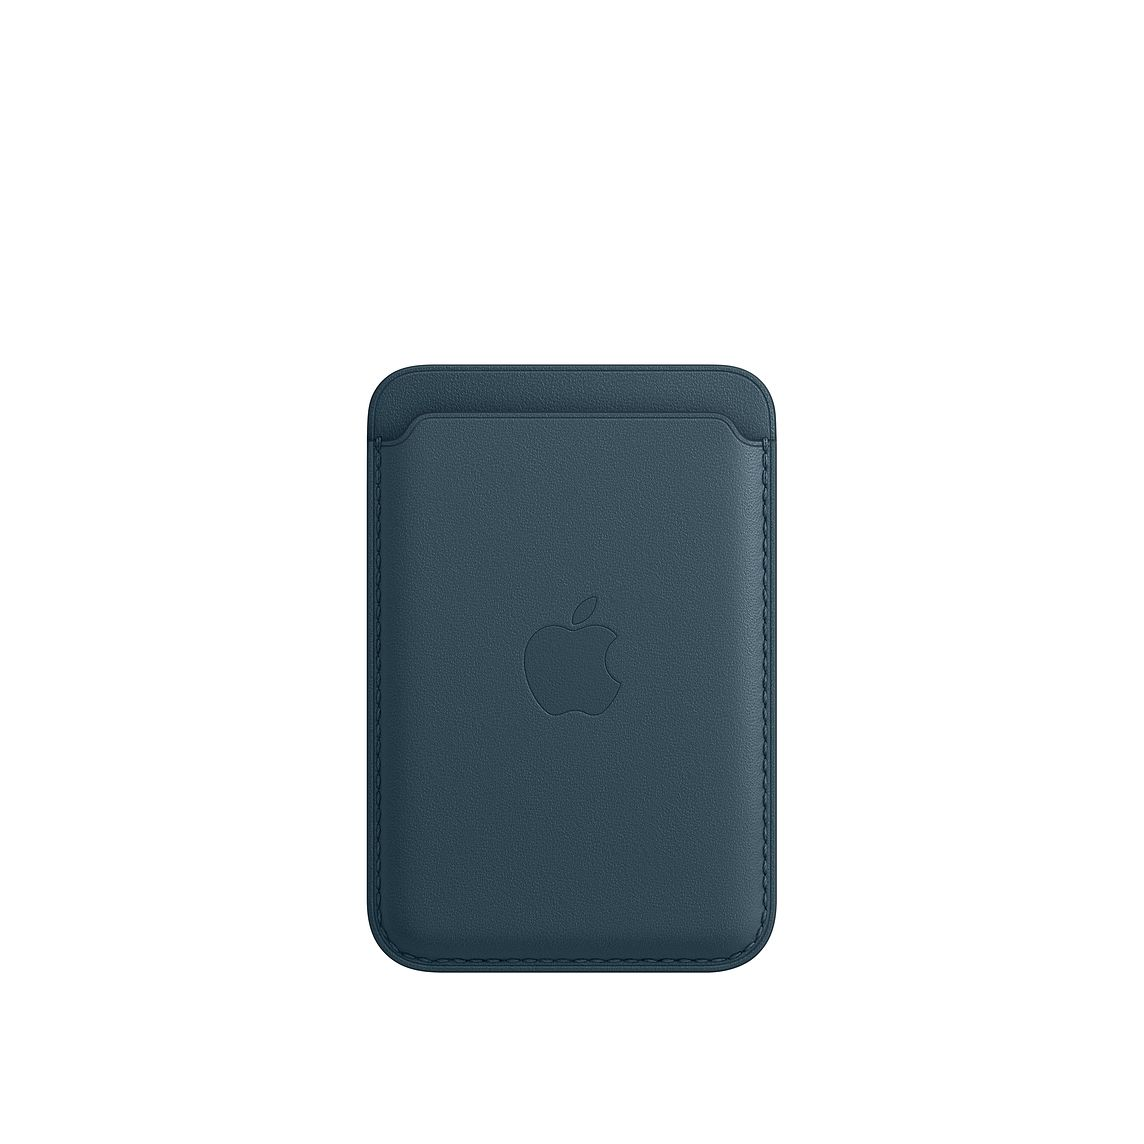 - iPhone Leather Wallet with MagSafe / Azul Baltico 1